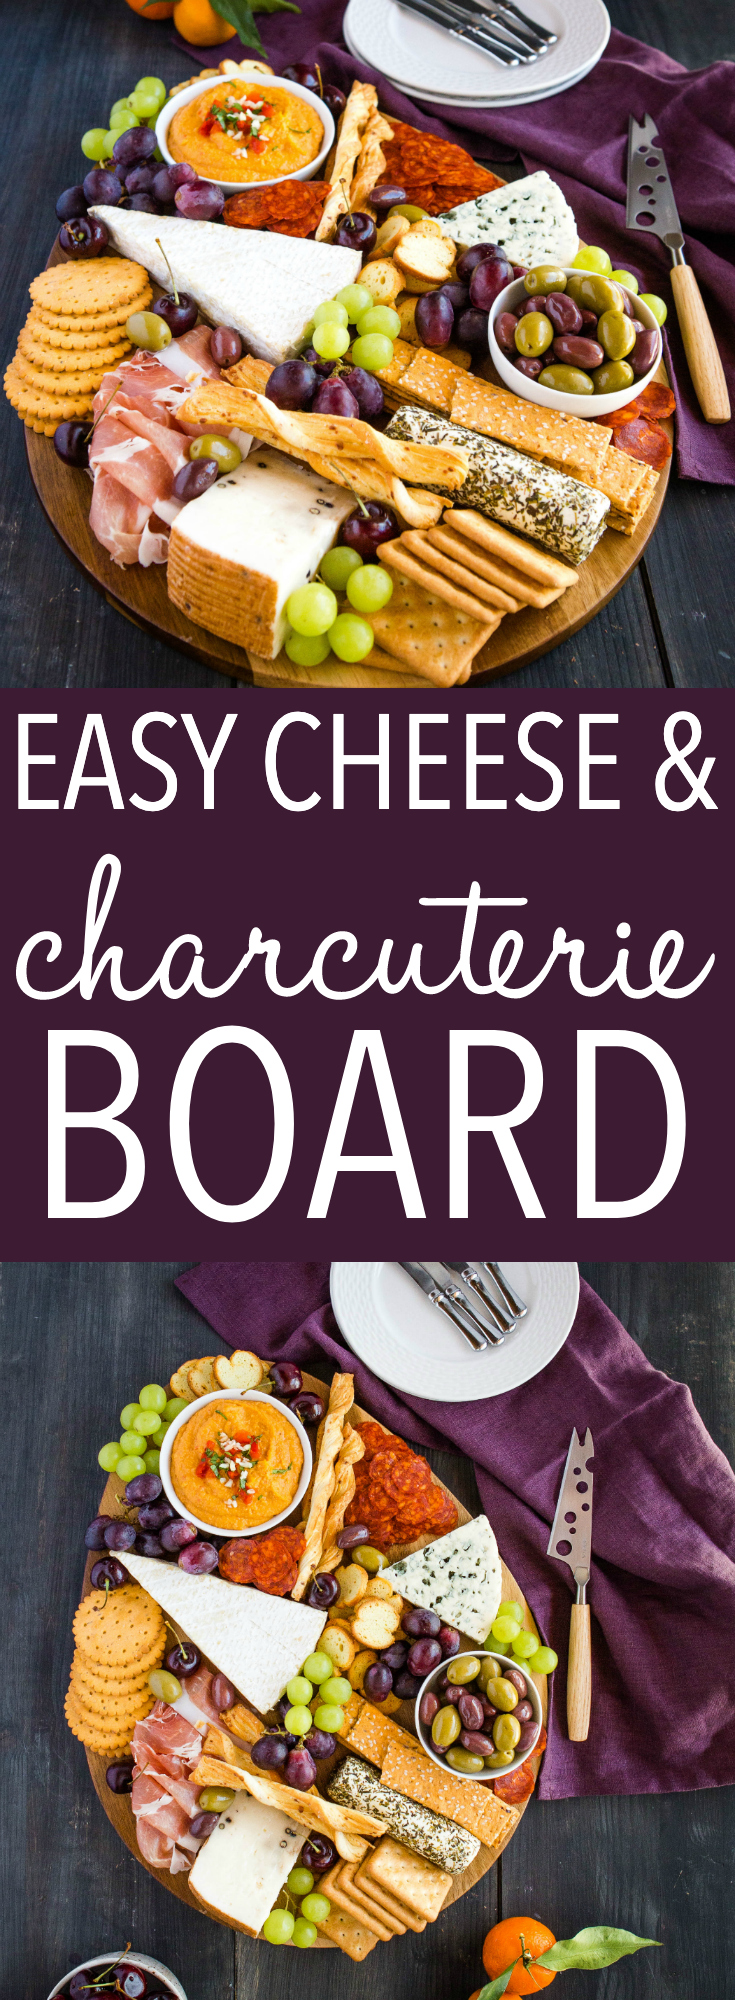 This Easy Charcuterie Board is the perfect simple appetizer for any get-together featuring a variety of cured meats, cheeses, crackers, fruit, nuts and olives! Easy to make and always a crowd-pleaser! Recipe from thebusybaker.ca! #charcuterie #board #appetizer #gather #friends #gamenight #meatsandcheeses #cheeseboard via @busybakerblog